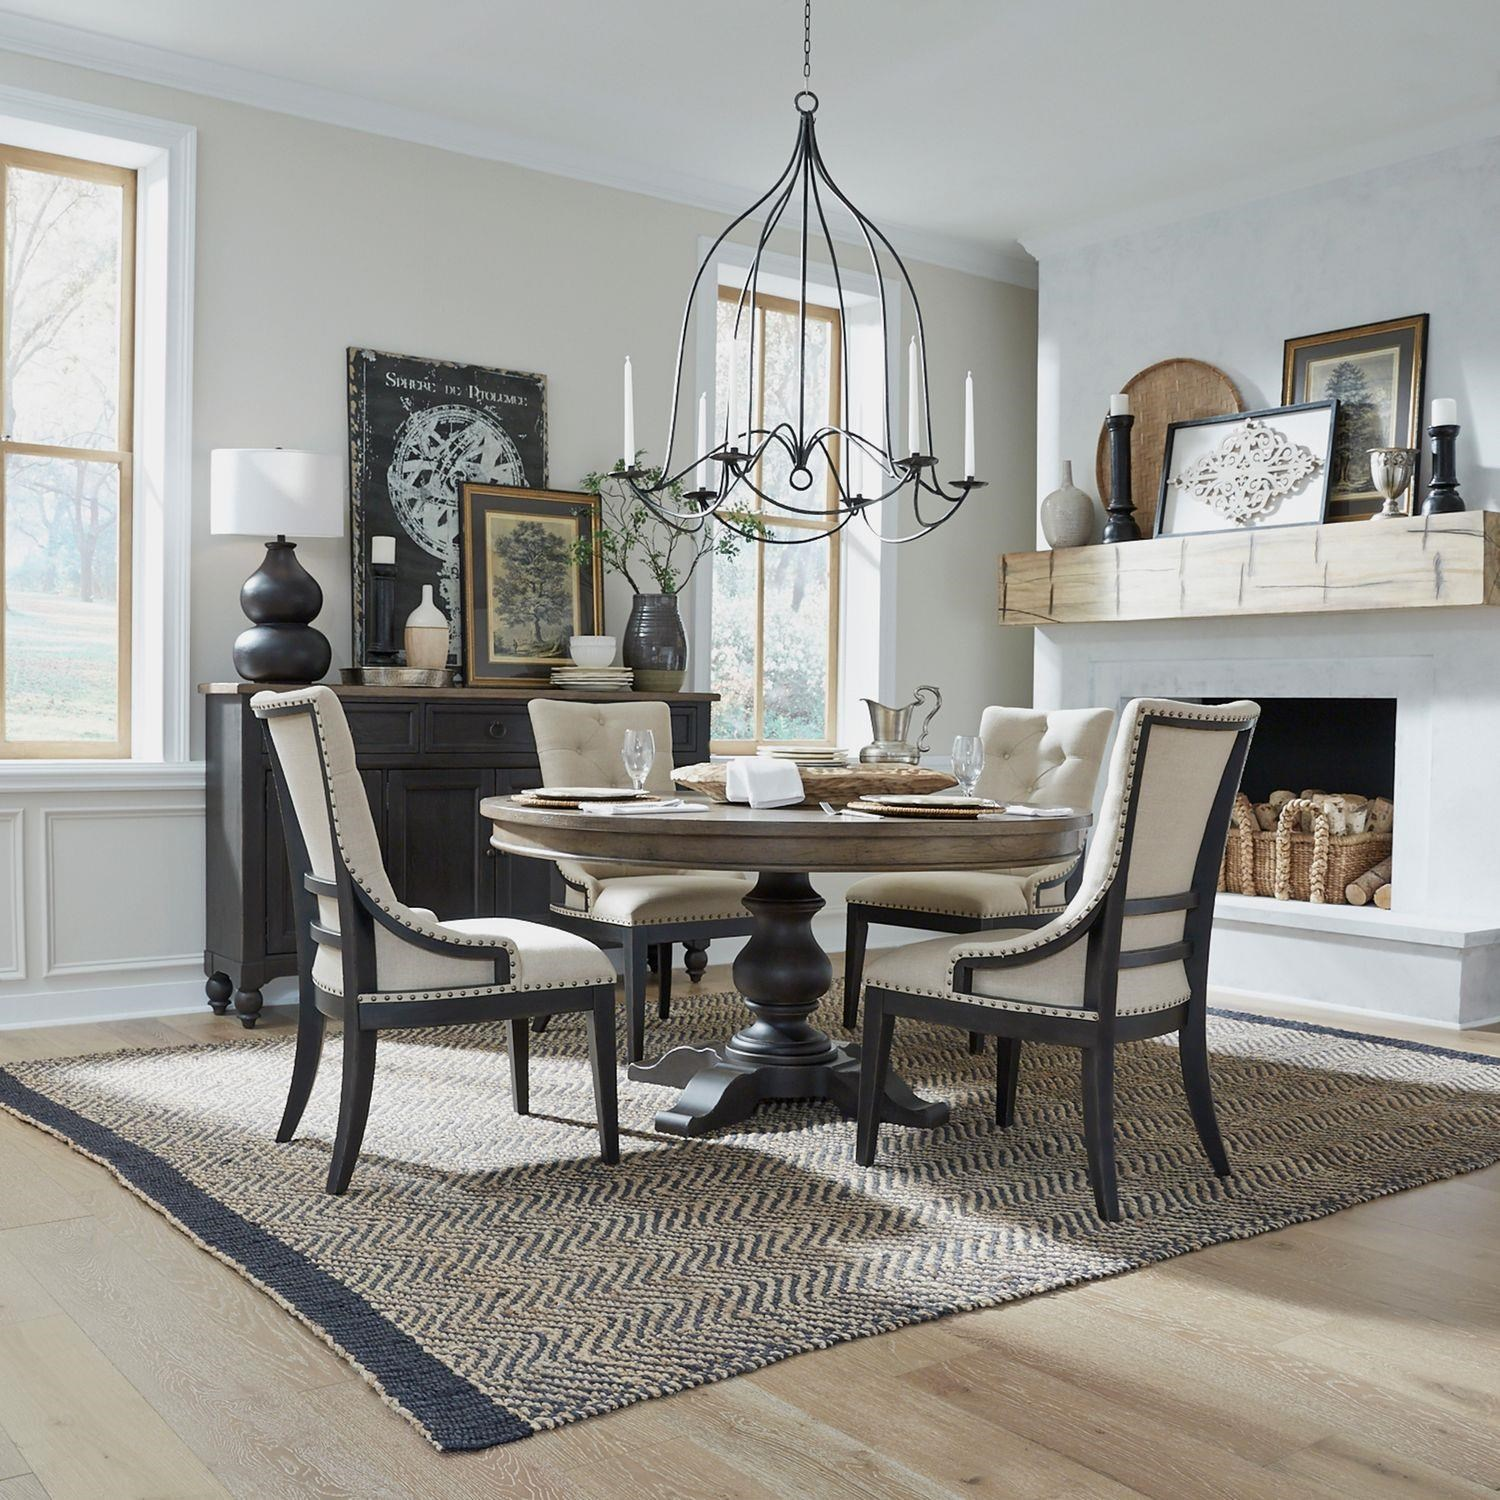 Americana Farmhouse Round Table and Upholsered Chair by Liberty Furniture at Johnny Janosik